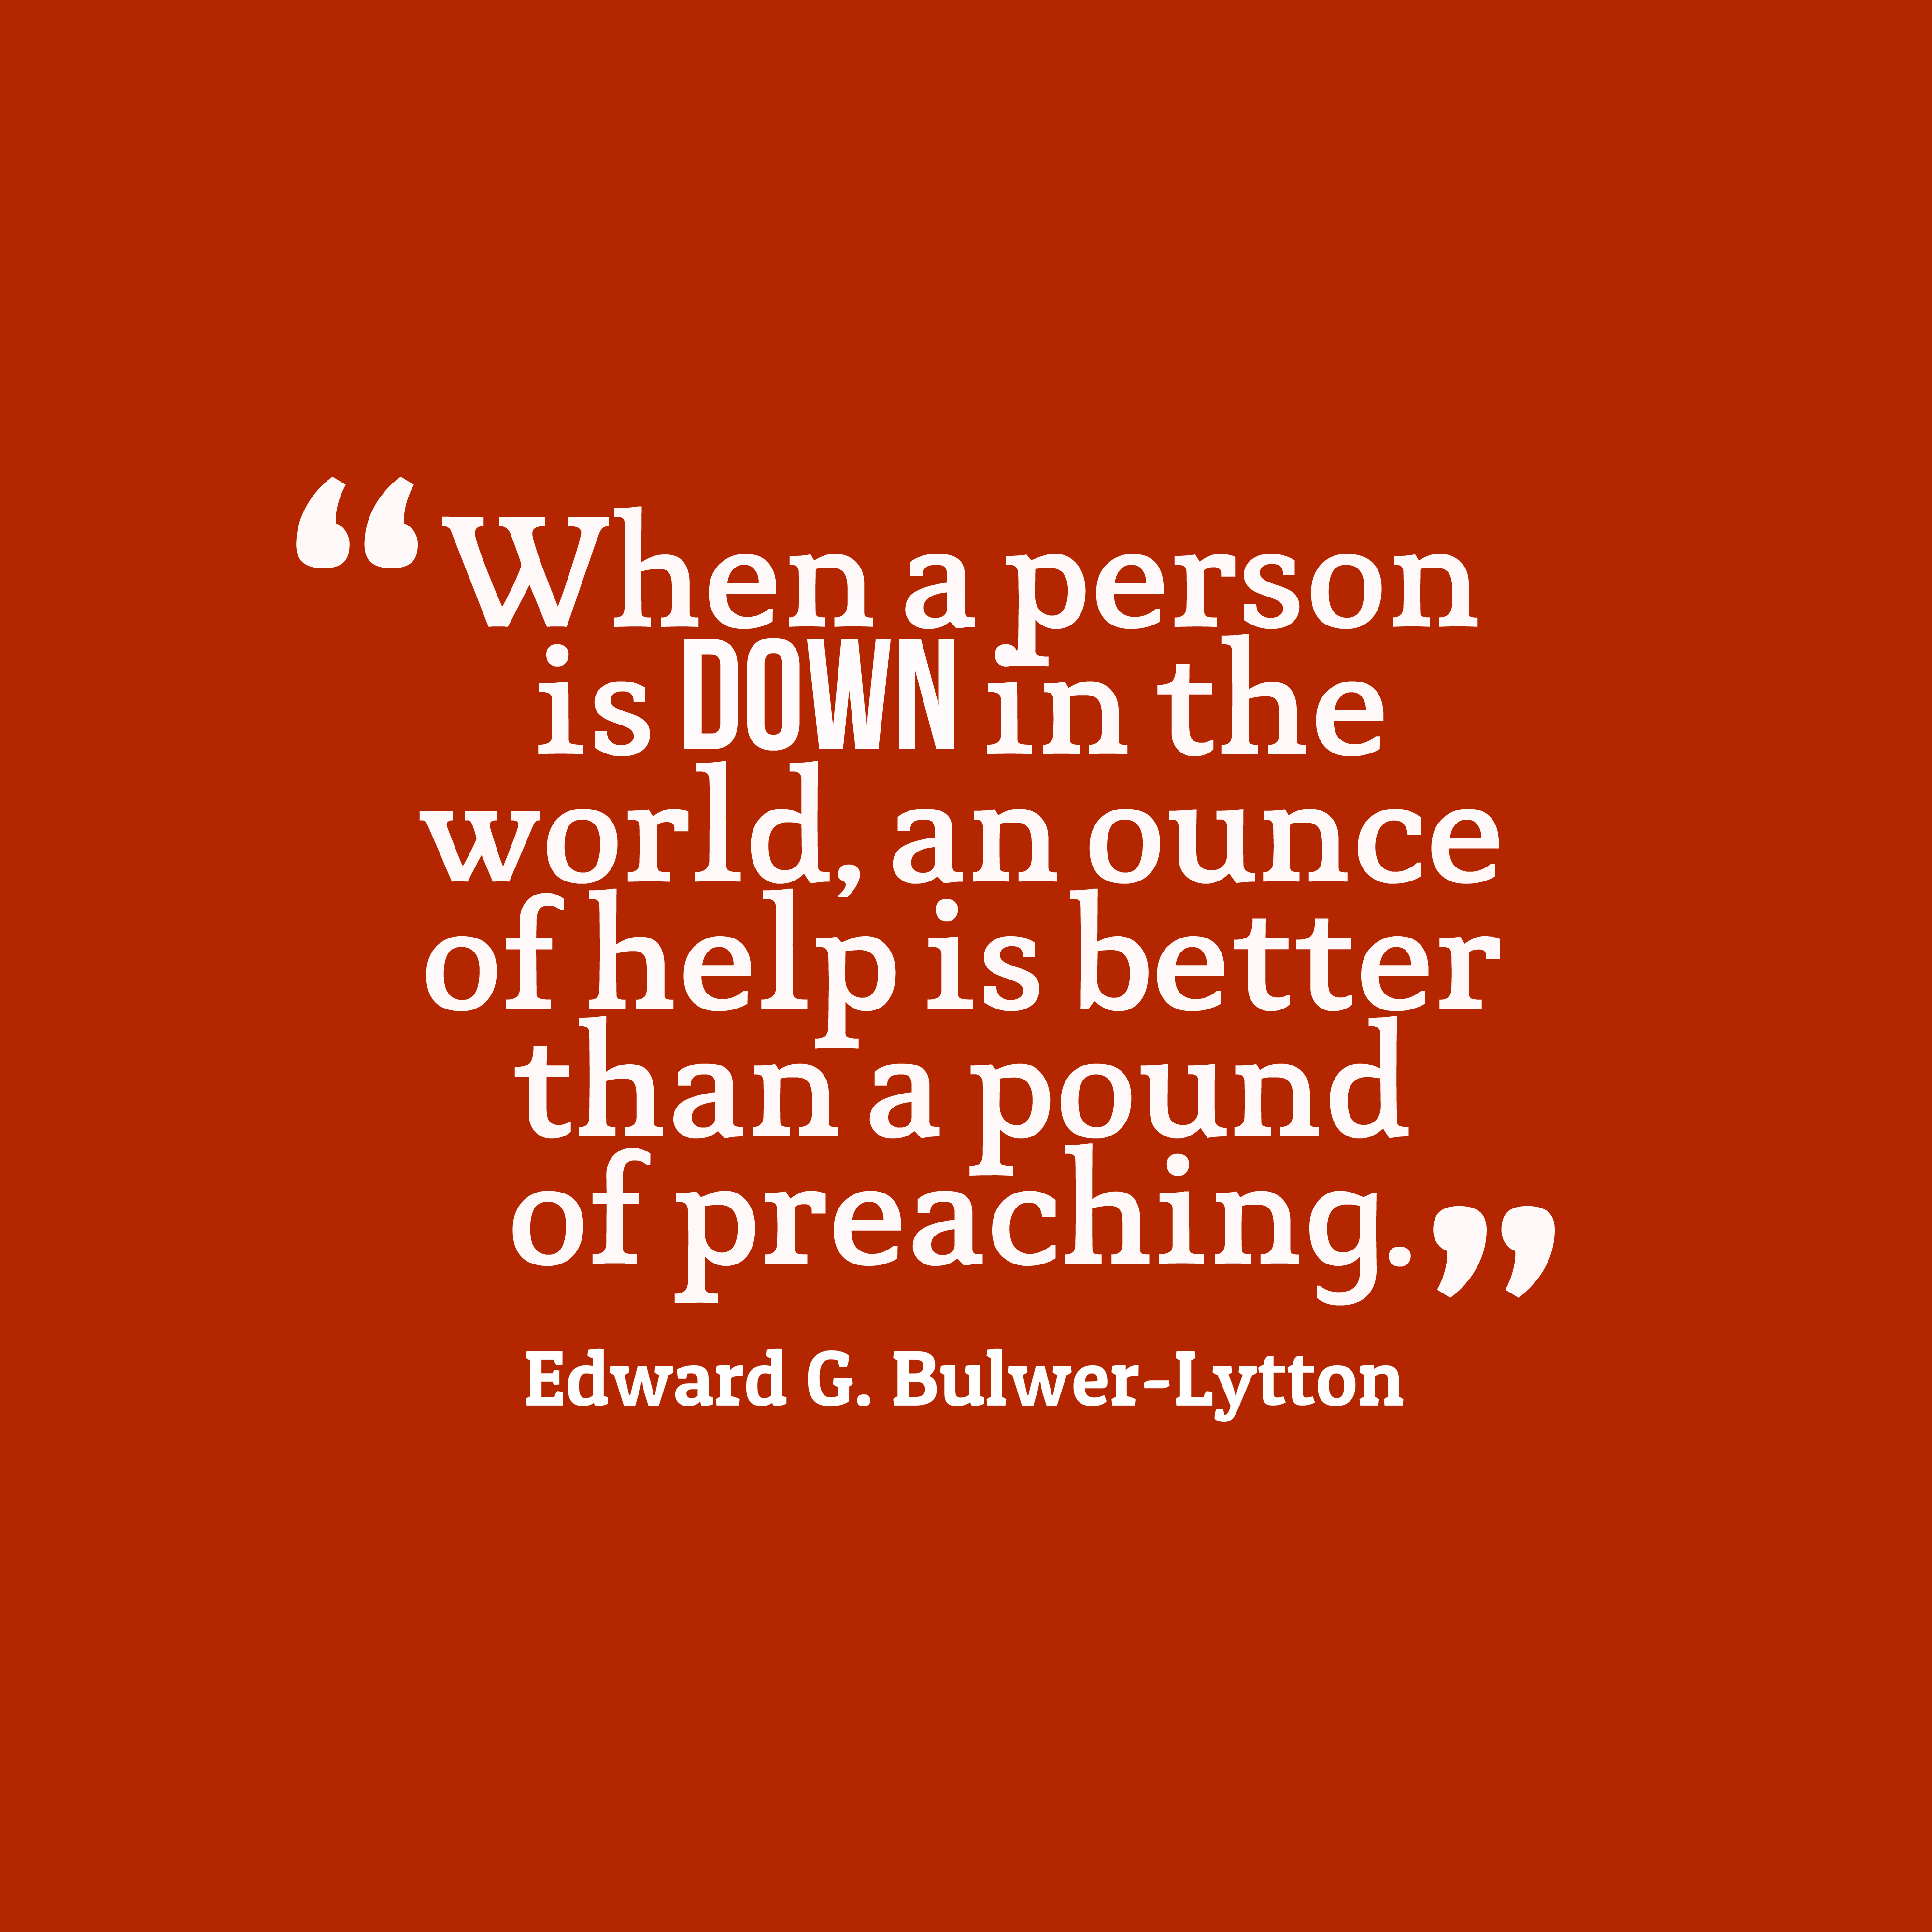 Quotes image of When a person is down in the world, an ounce of help is better than a pound of preaching.